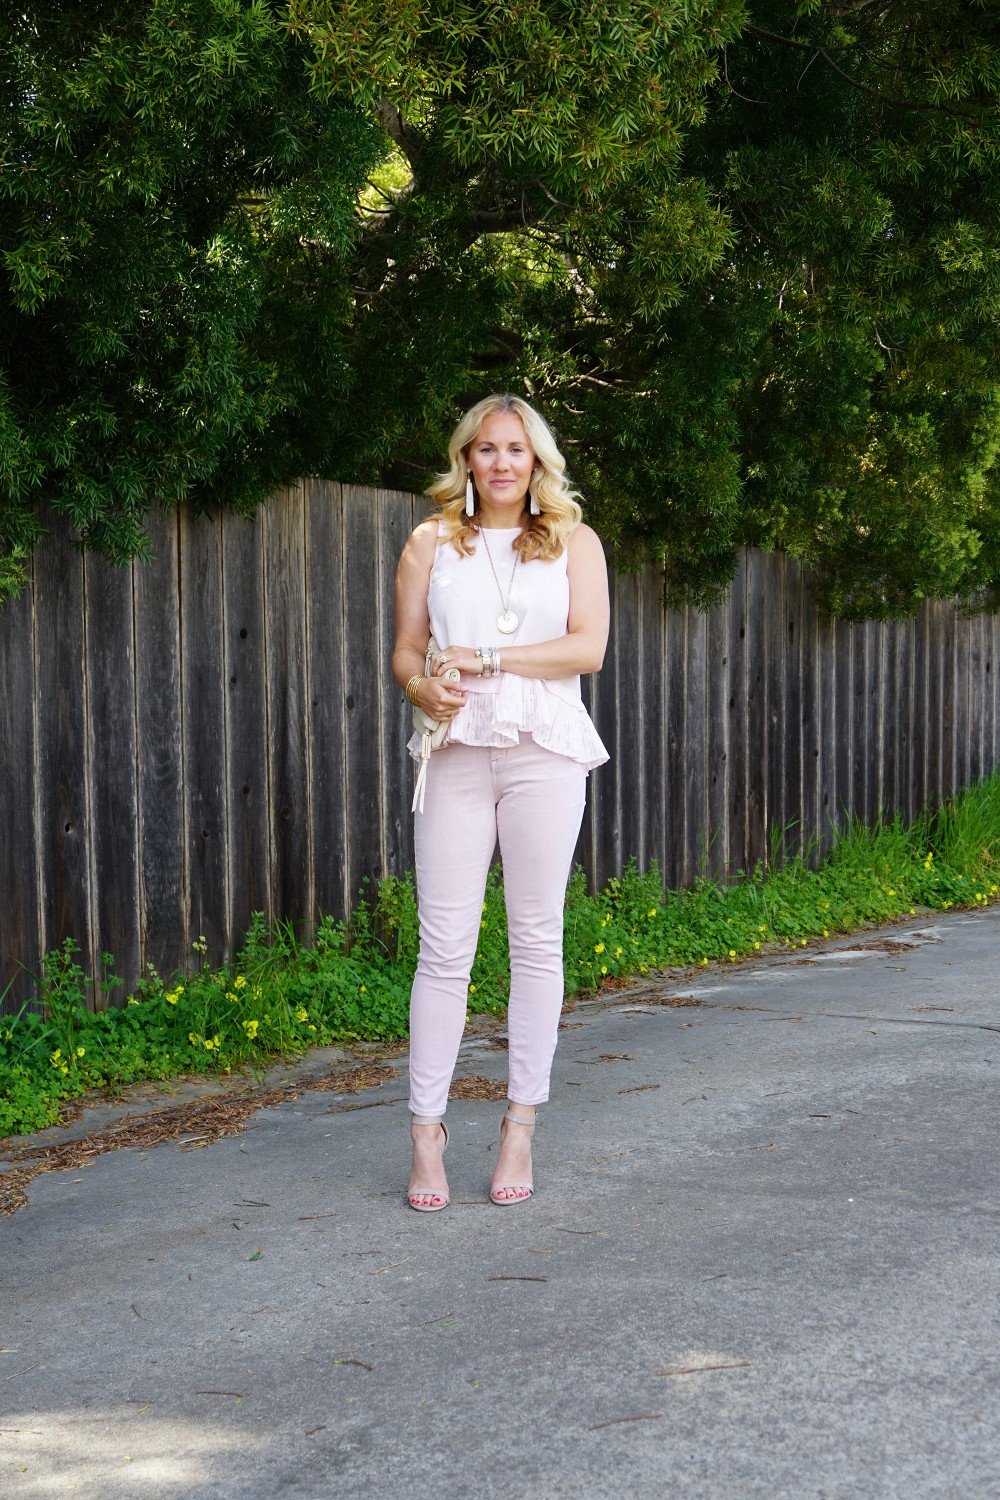 Blush Pink Easter Outfit-Easter Outfit Idea-Target Style-Who What Wear for Target-Outfit Inspiration-Have Need Want 5